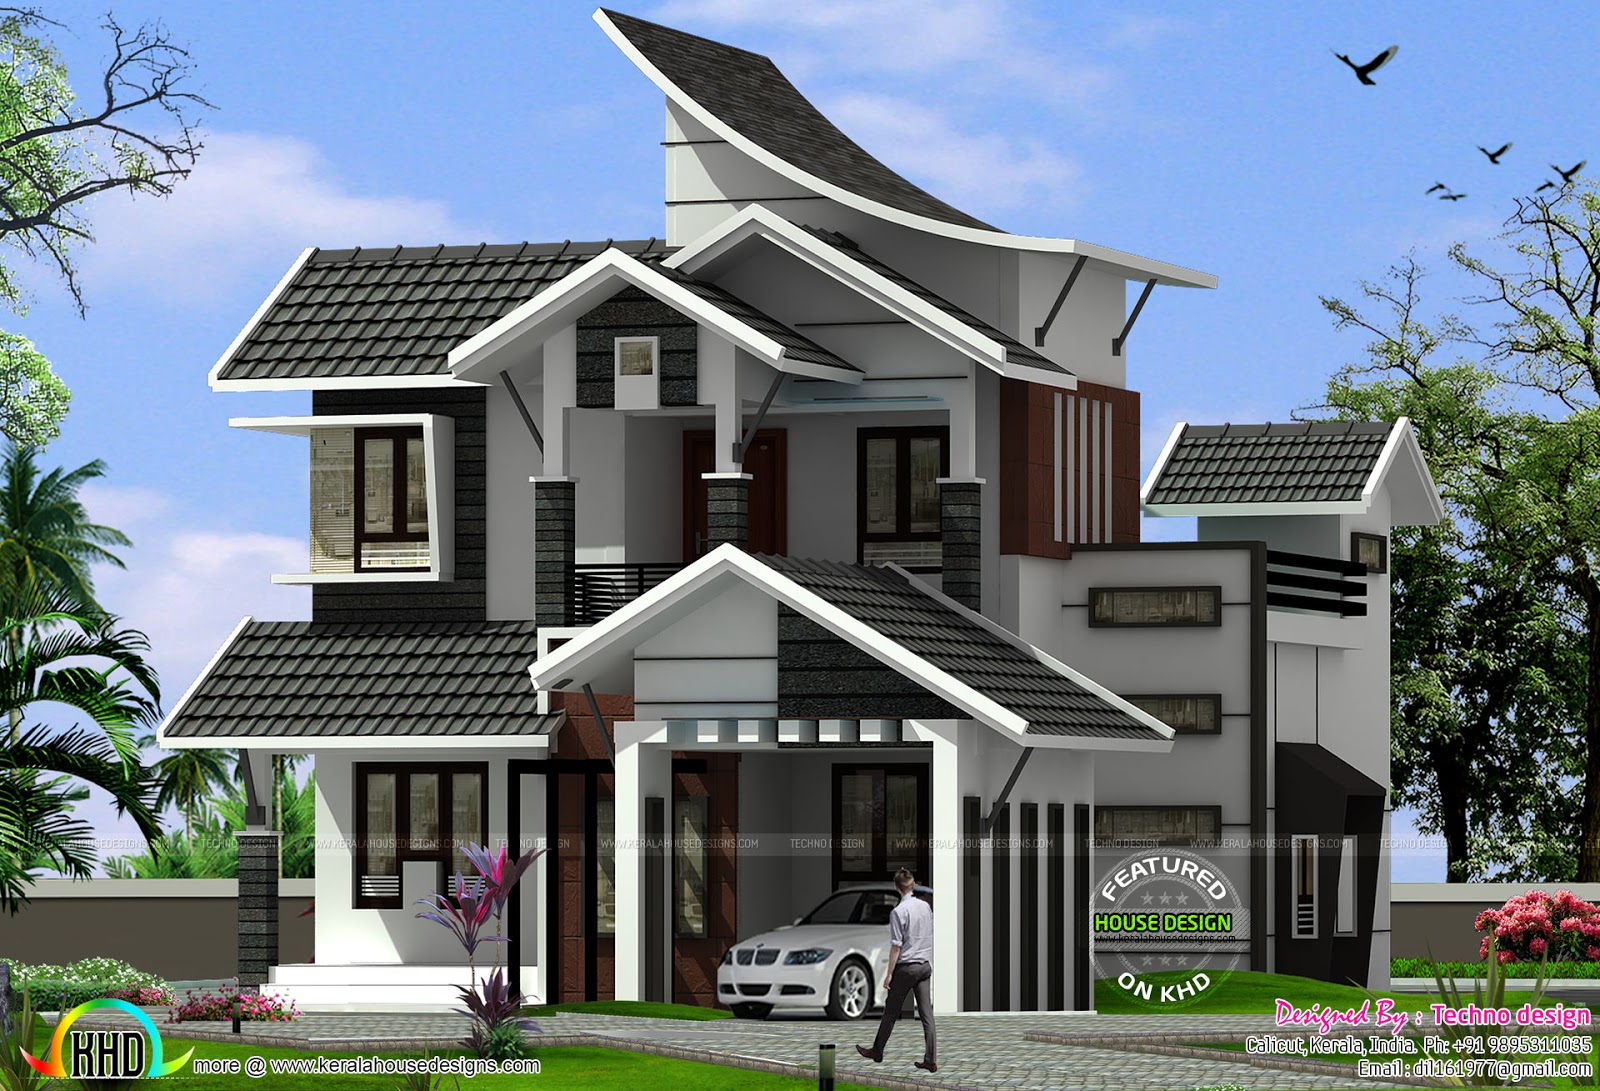 Simple House Plans On A Budget - Front Design